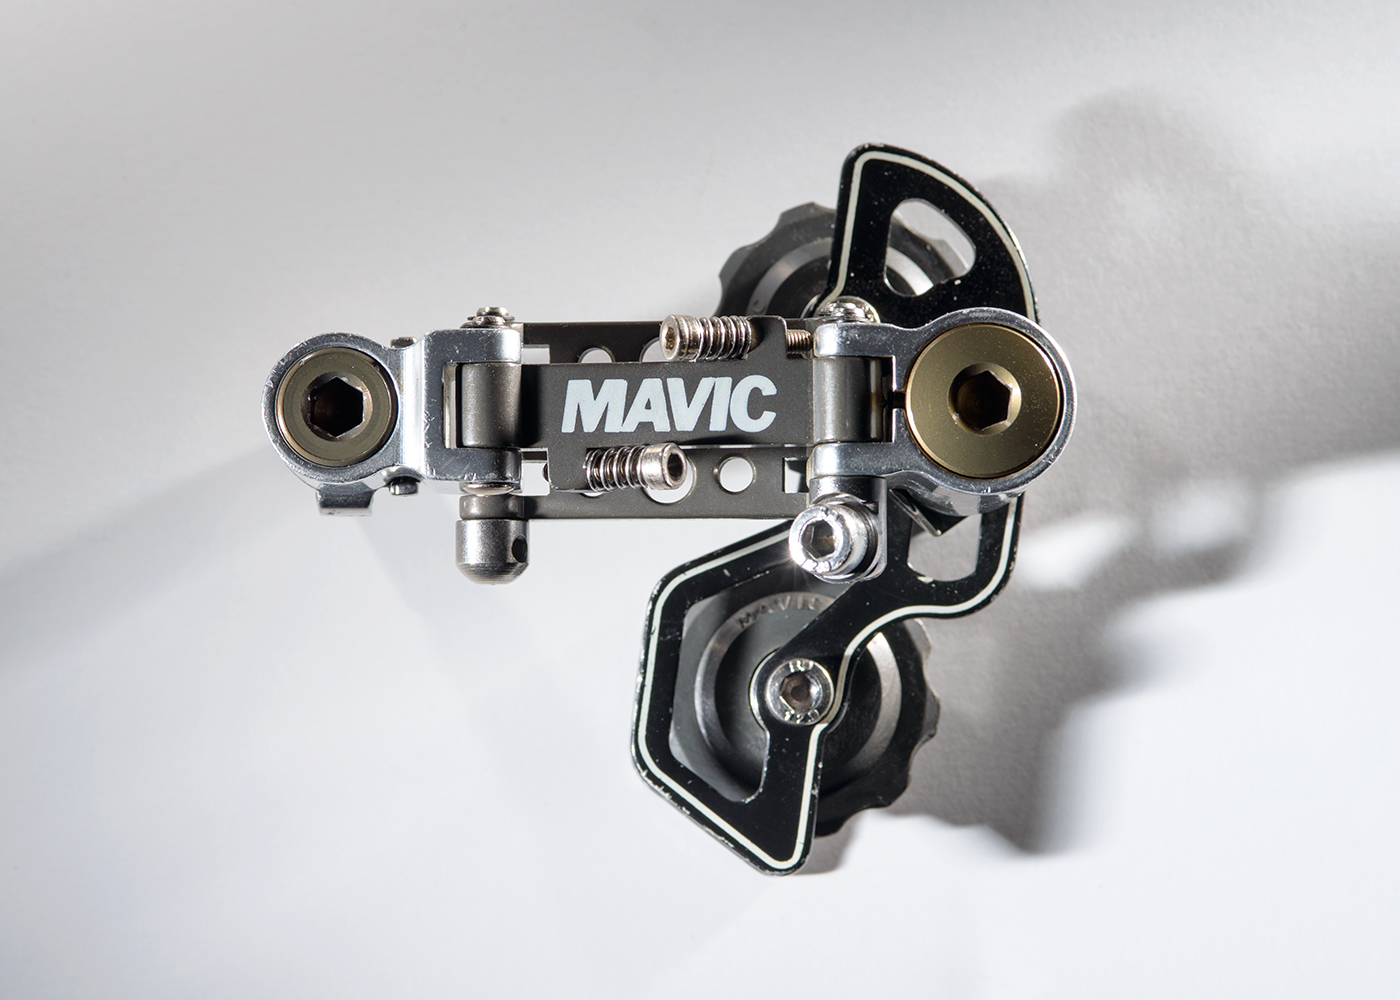 Mavic 851 SSC  This is the Professional version of the 801 which was introduced in 1979.